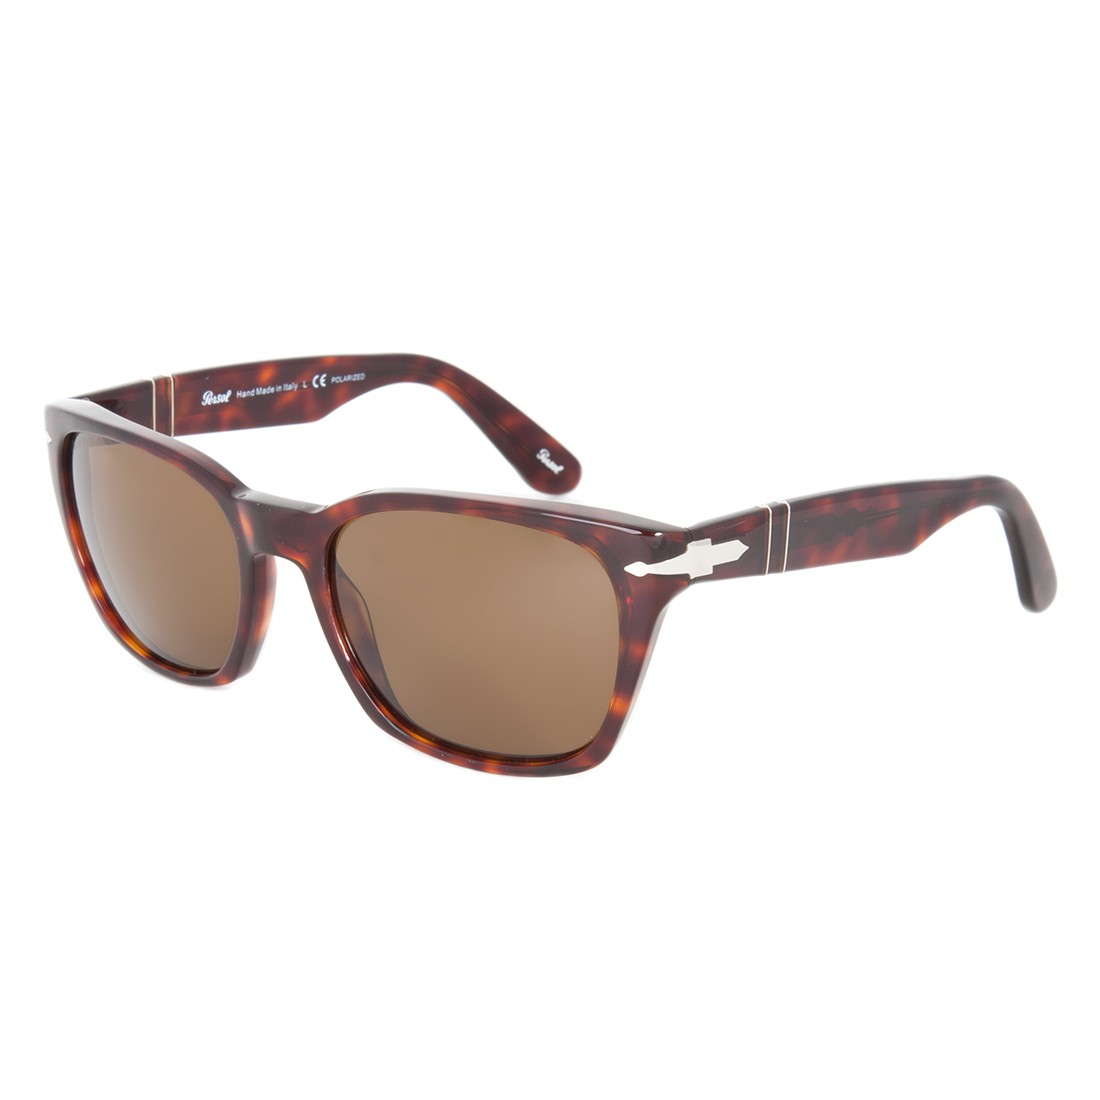 In Persol Dealzone62Discount Deal Gents South Africa w0ONmyvnP8